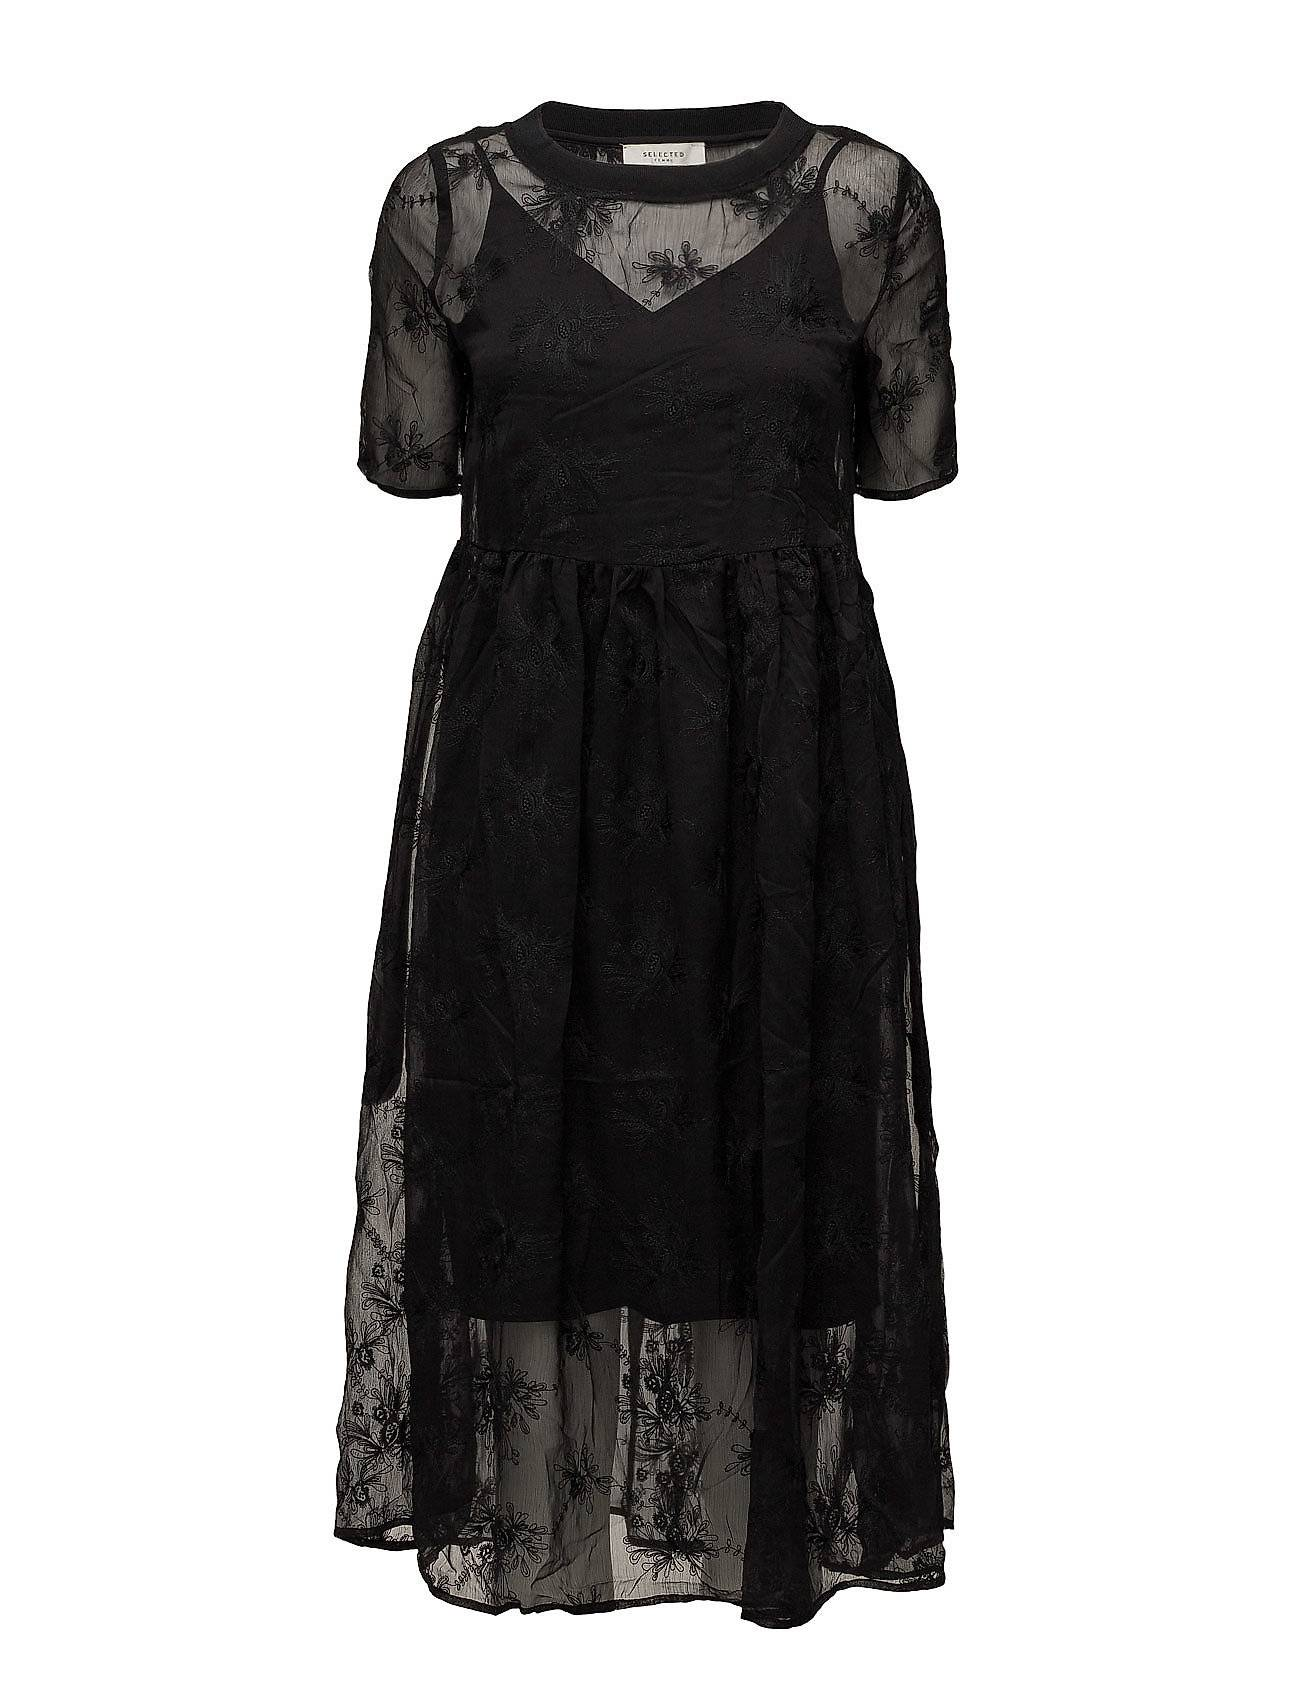 Selected Femme Sfewha 2/4 Lace Dress